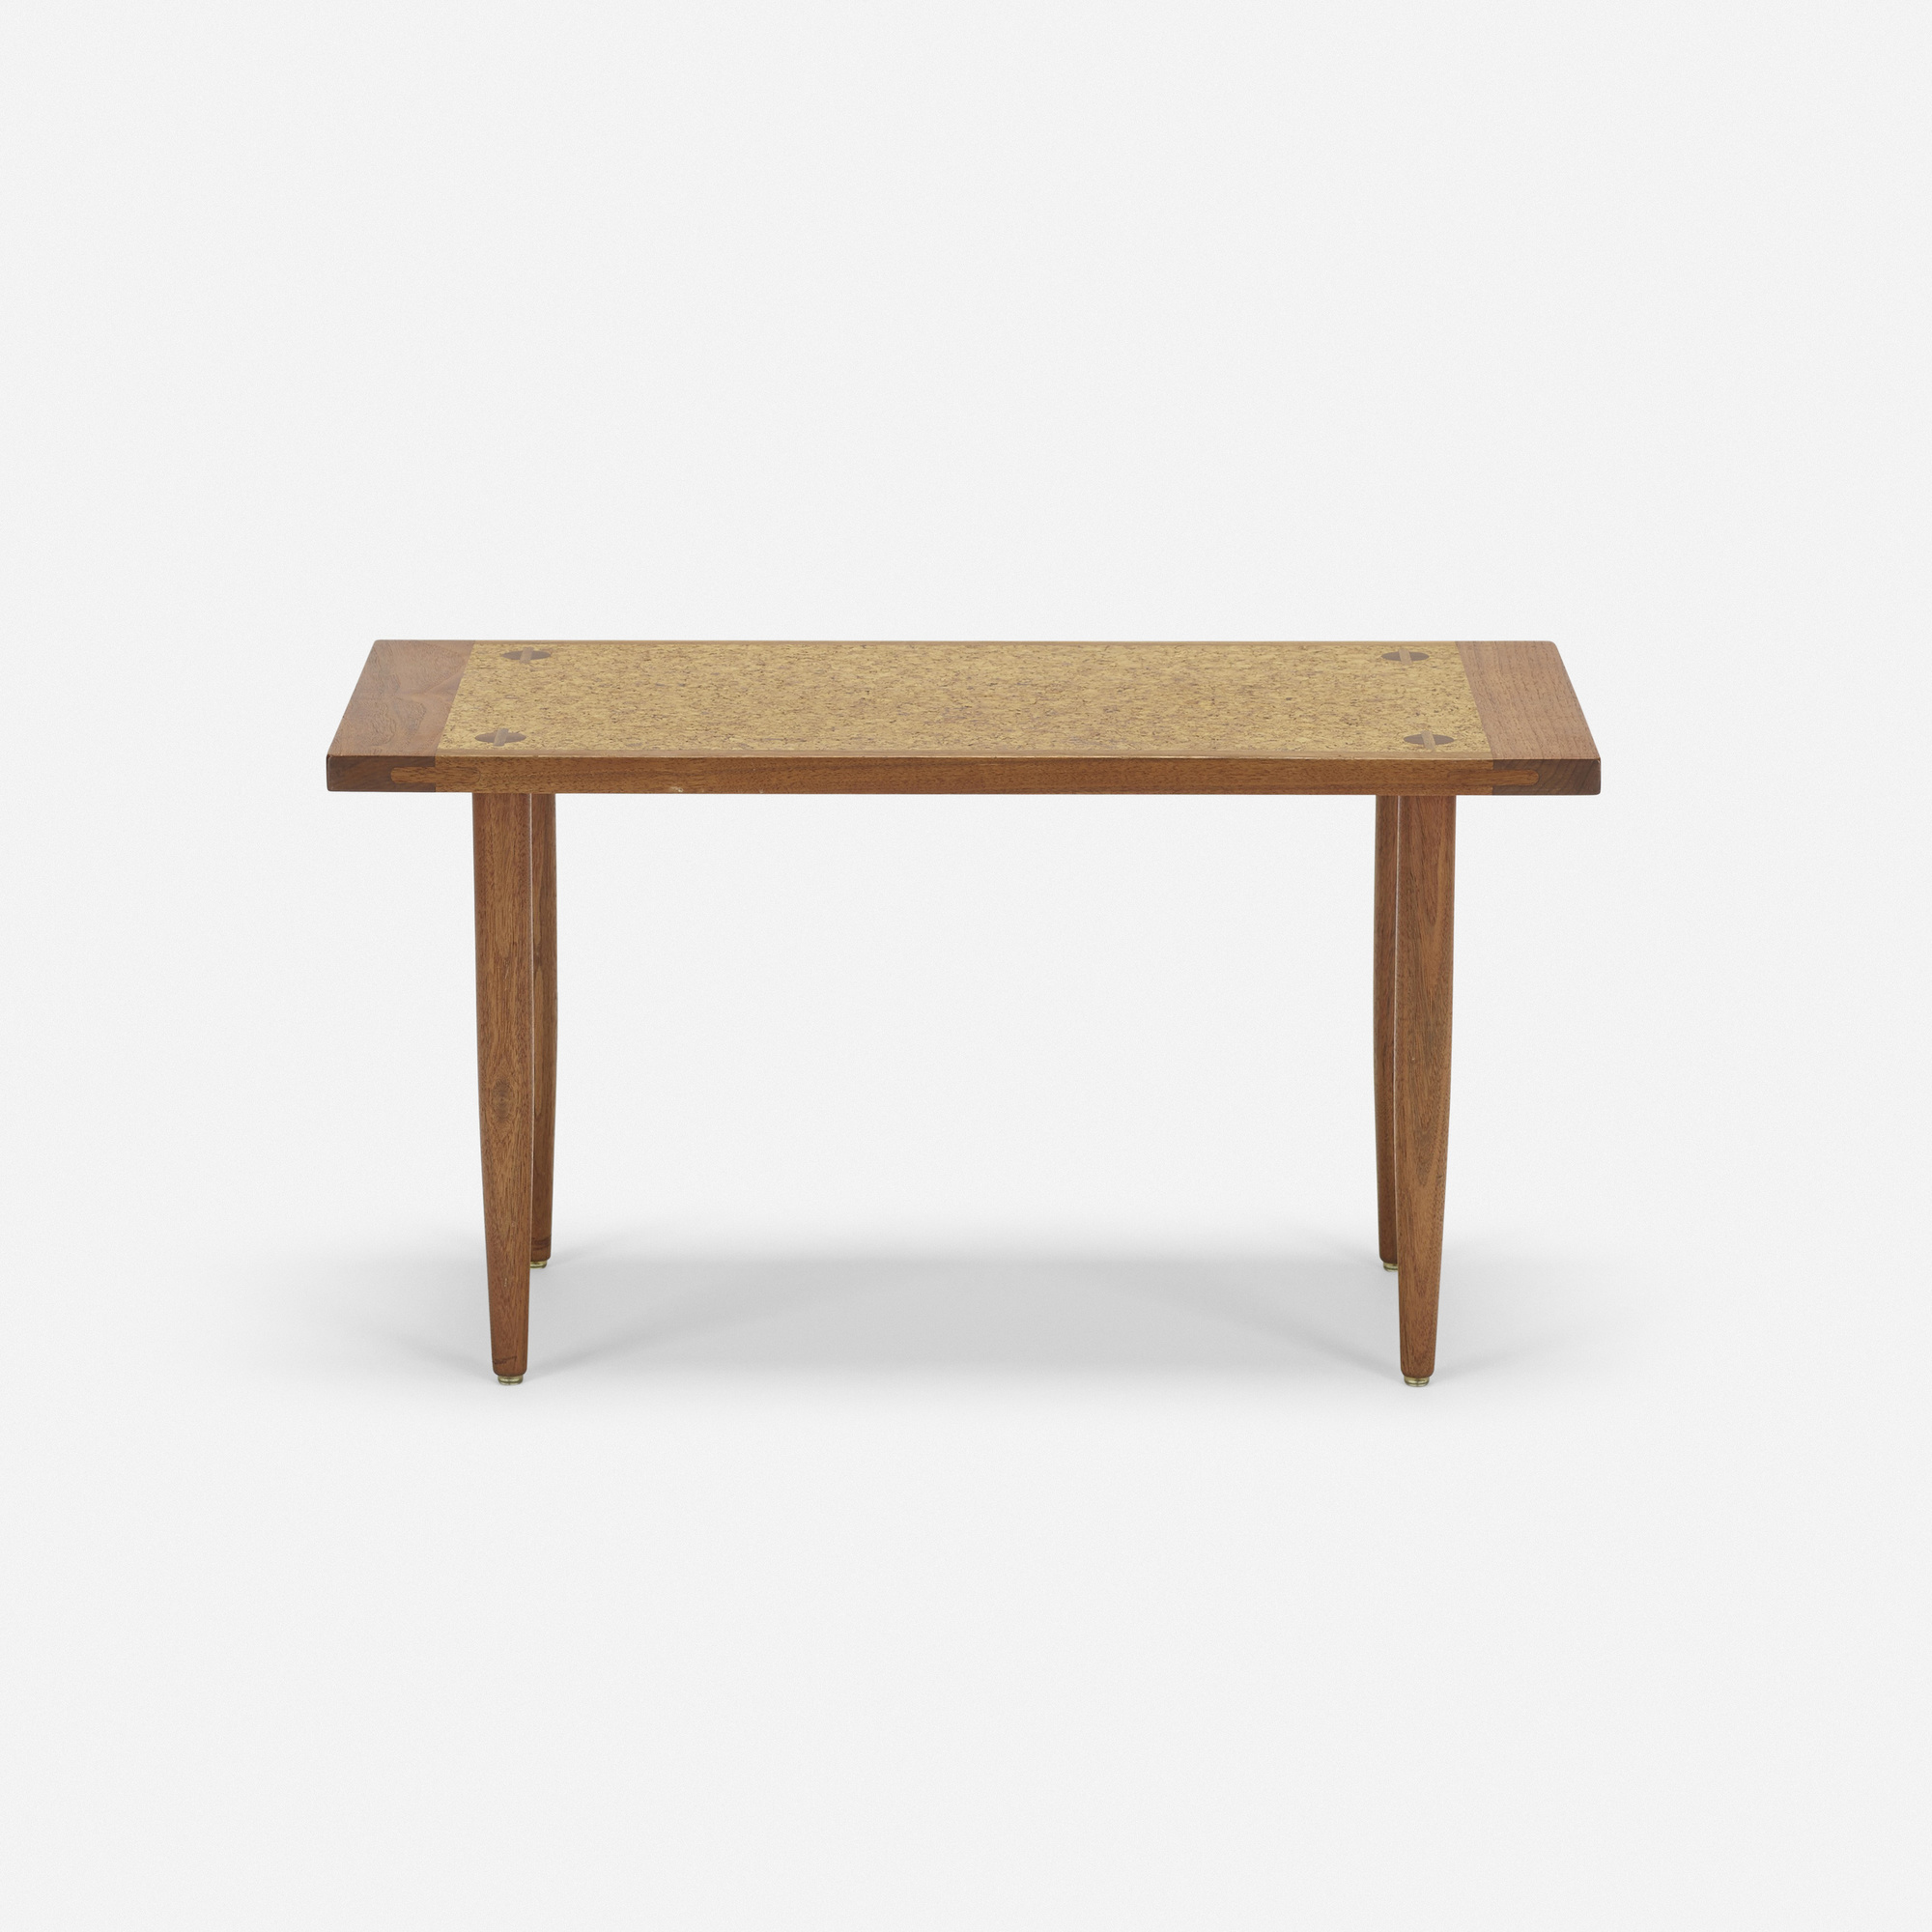 176: Sam Maloof / occasional table (2 of 5)